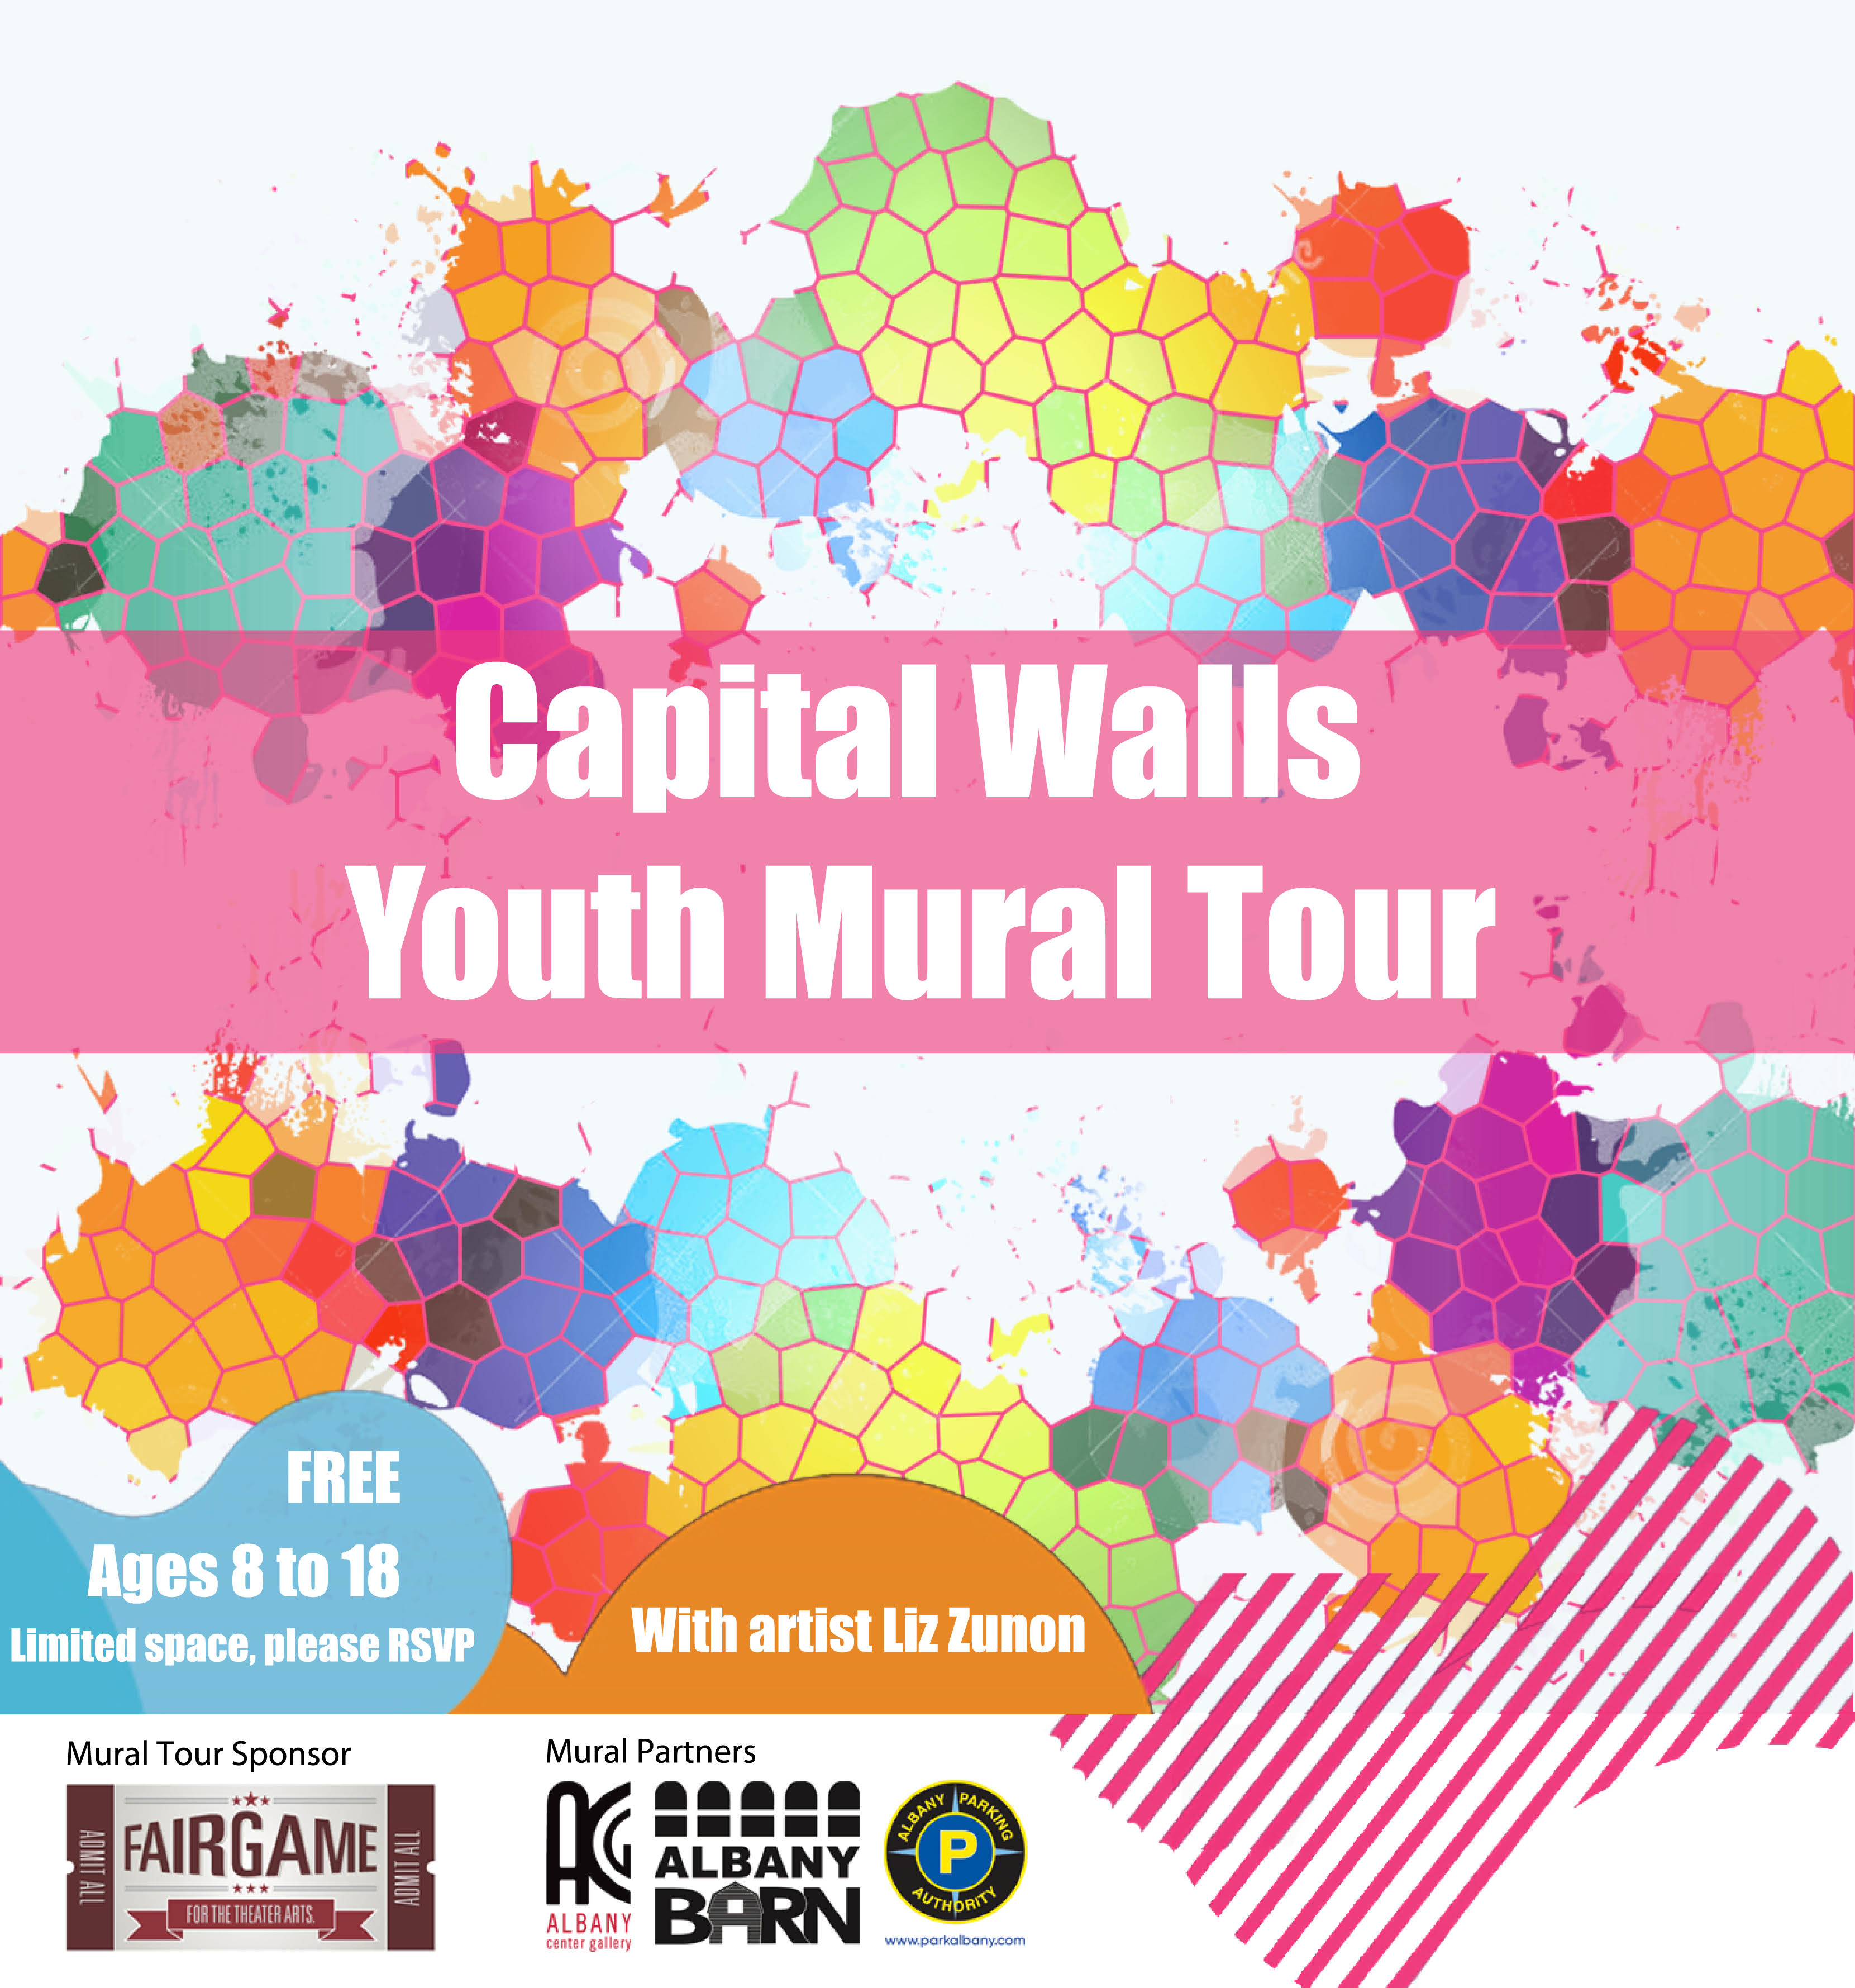 Announcing The First Capital Walls Youth Mural Tour!